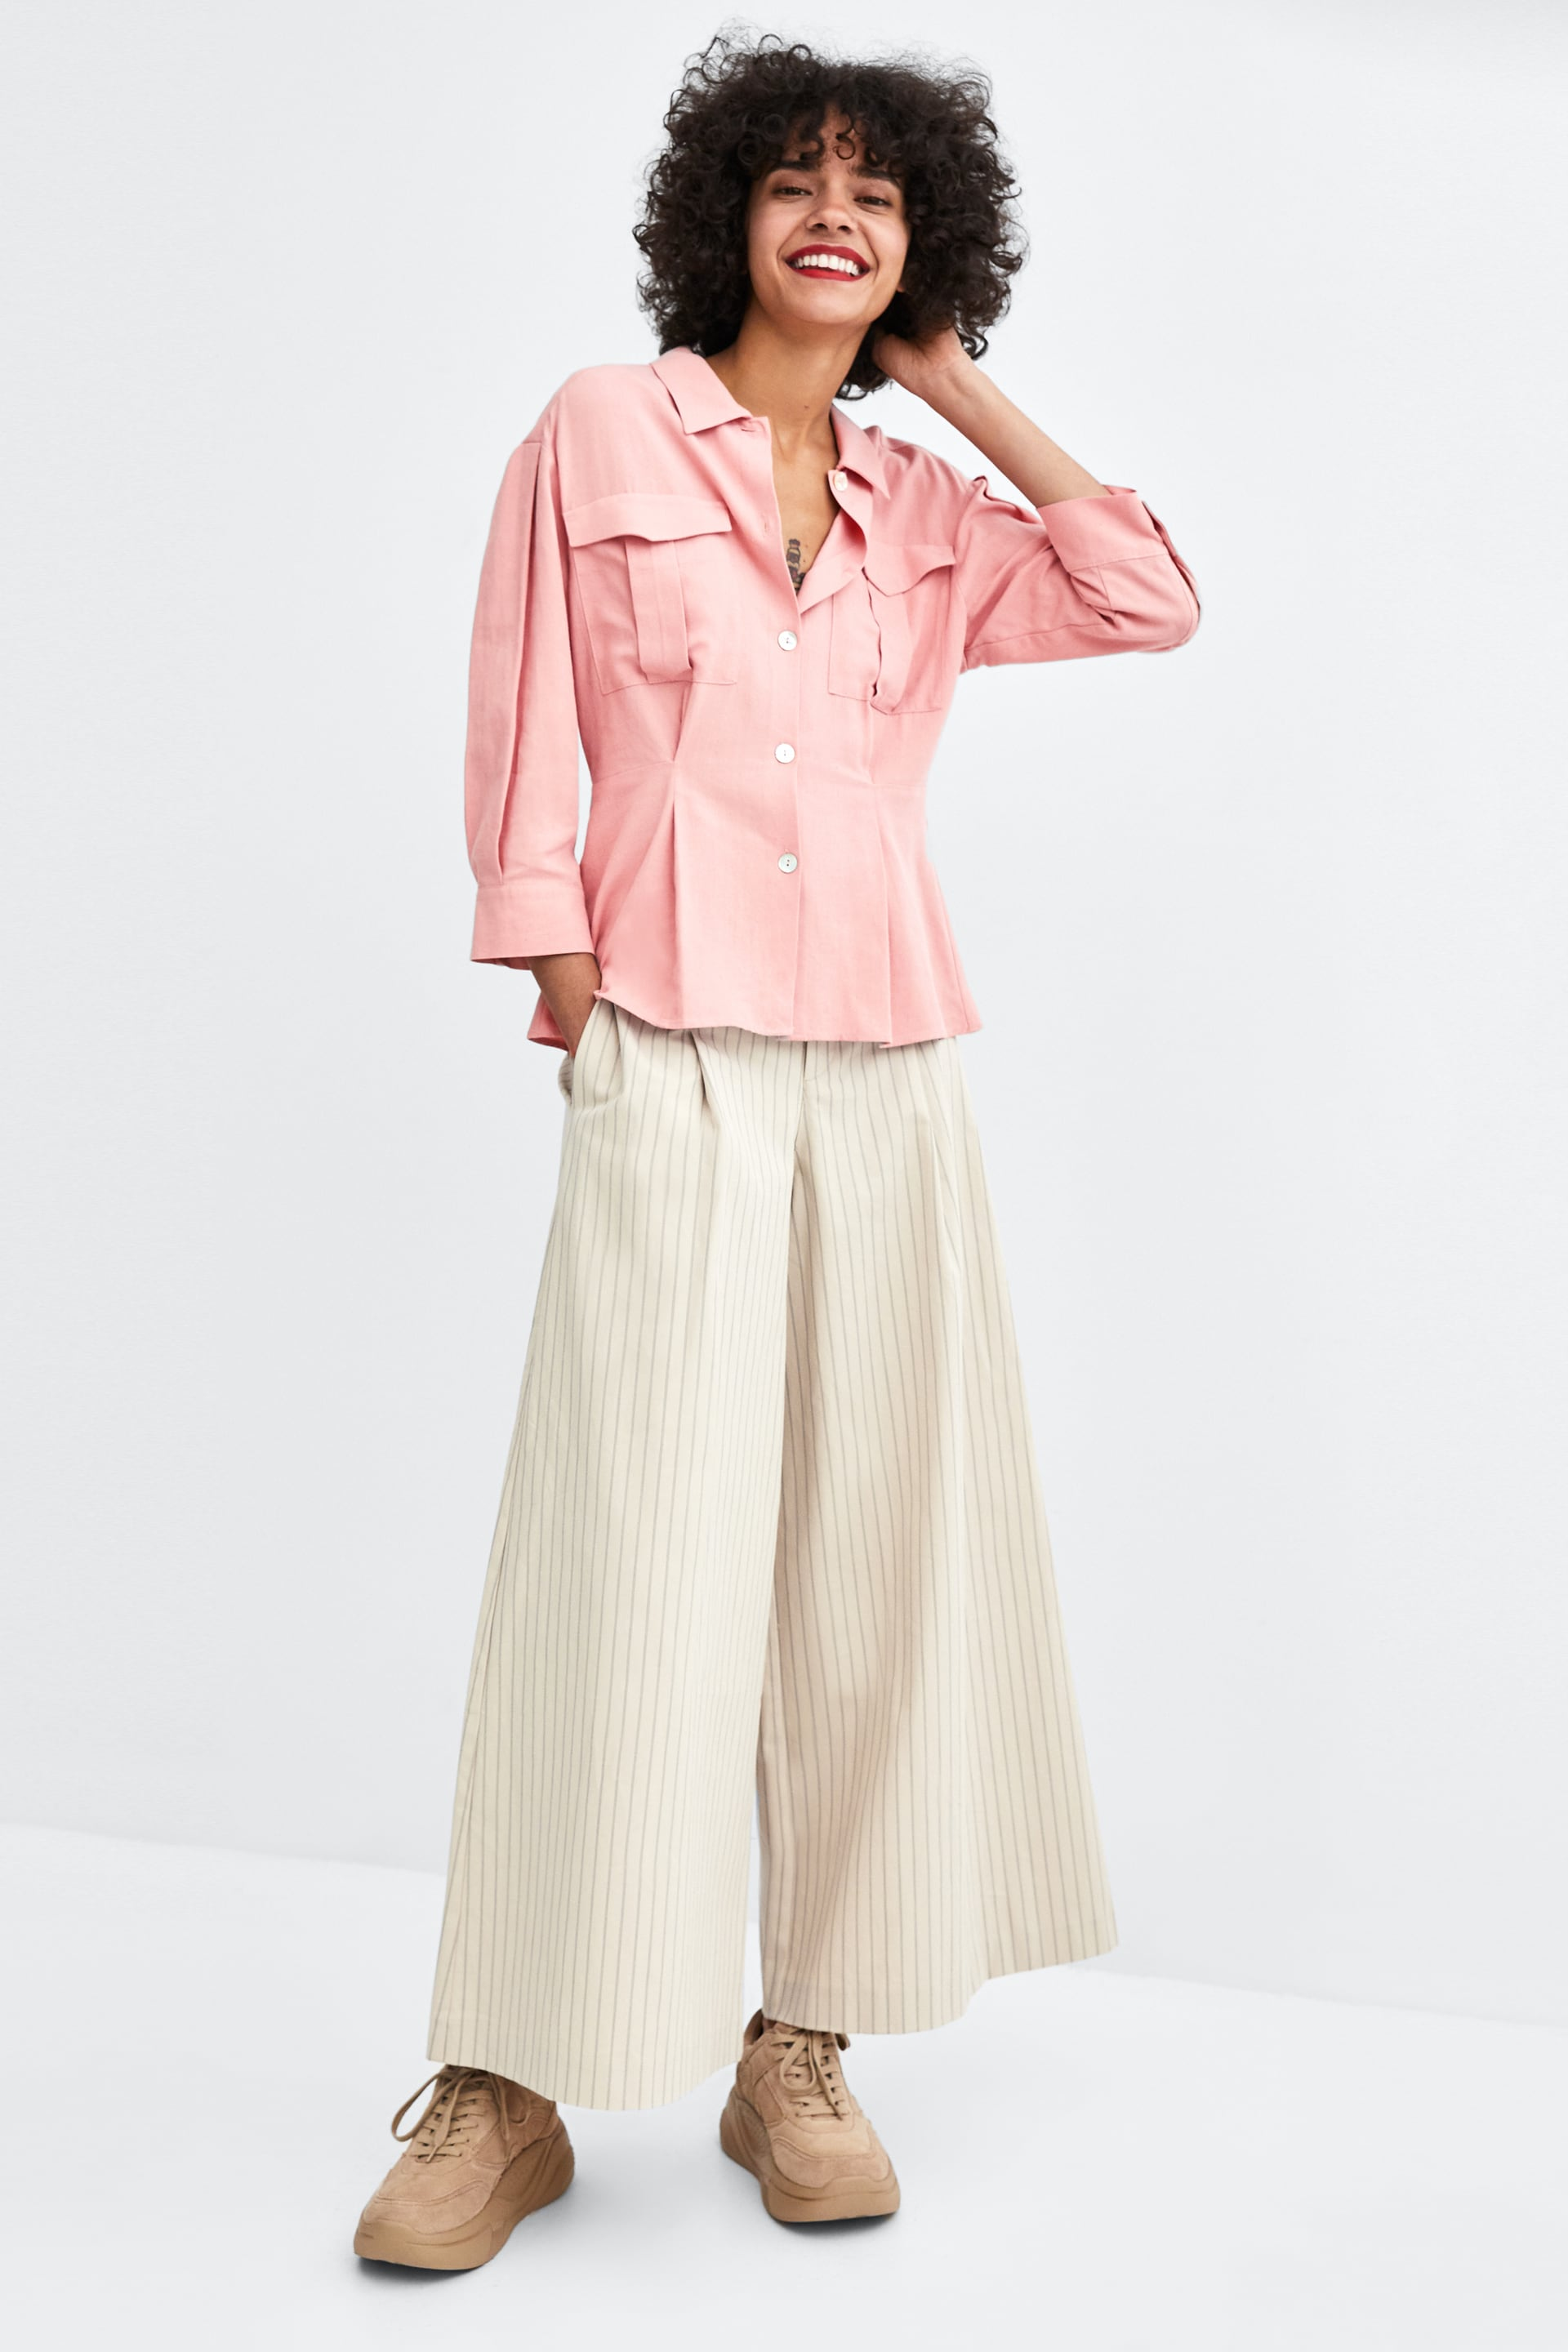 Pleated Shirt  Join Lifewoman Corner Shops by Zara